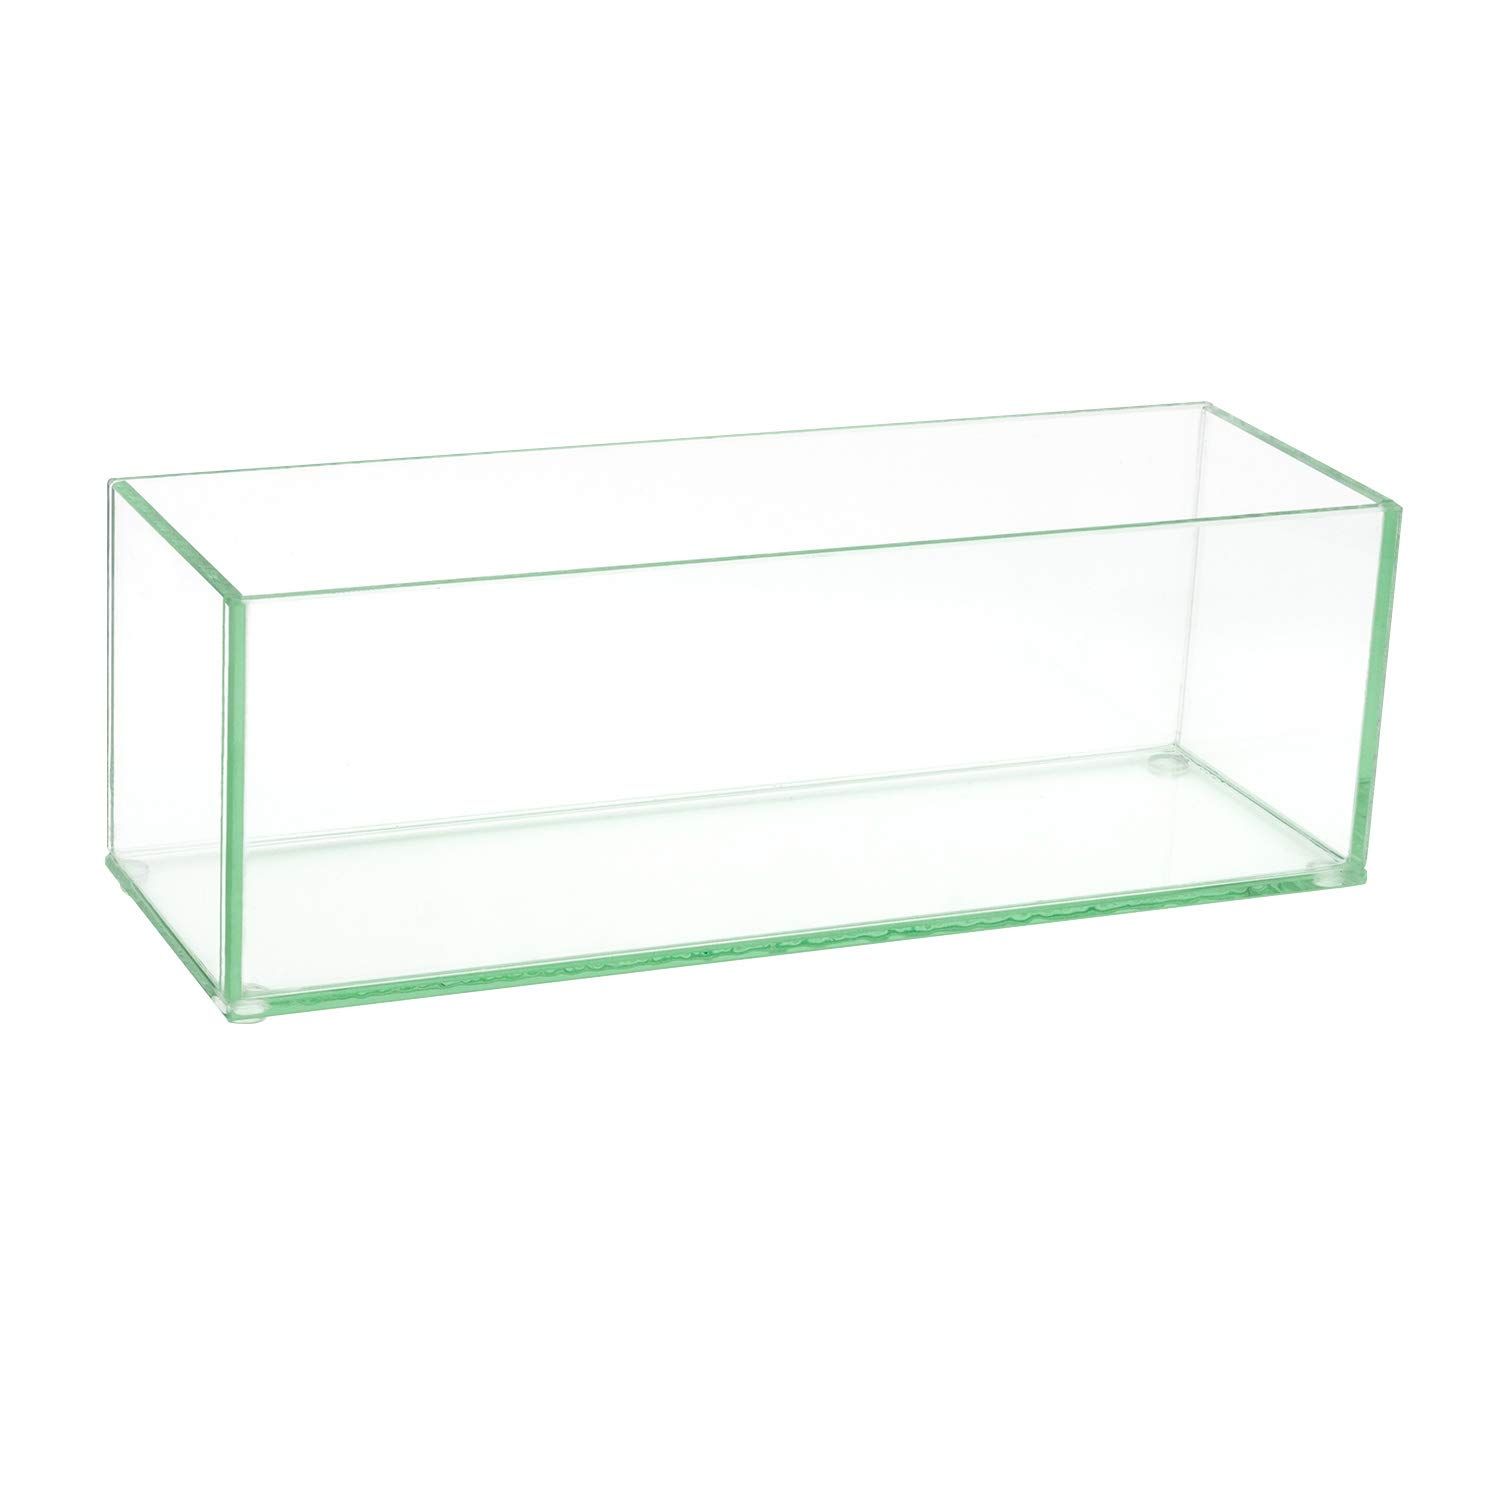 Flower Glass Vase Decorative Centerpiece For Home or Wedding by Royal Imports - Oblong Rectangle Shape, 12